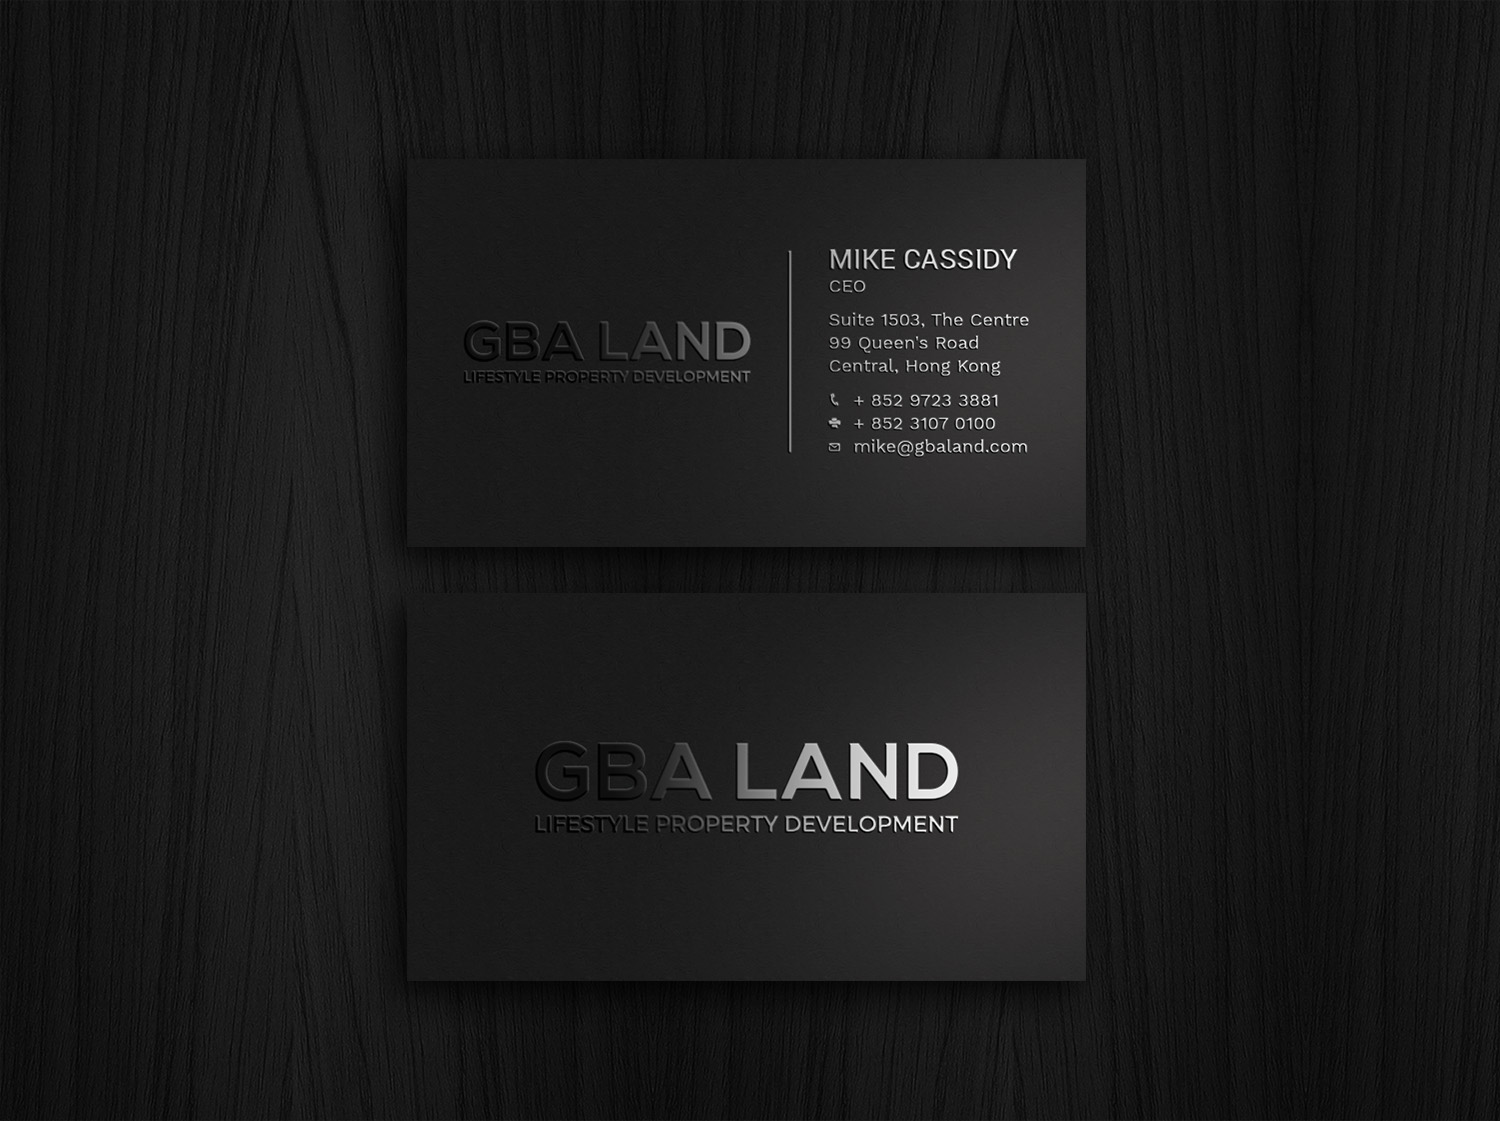 86 modern business card designs real estate development business business card design by avanger000 for this project design 19251302 reheart Image collections